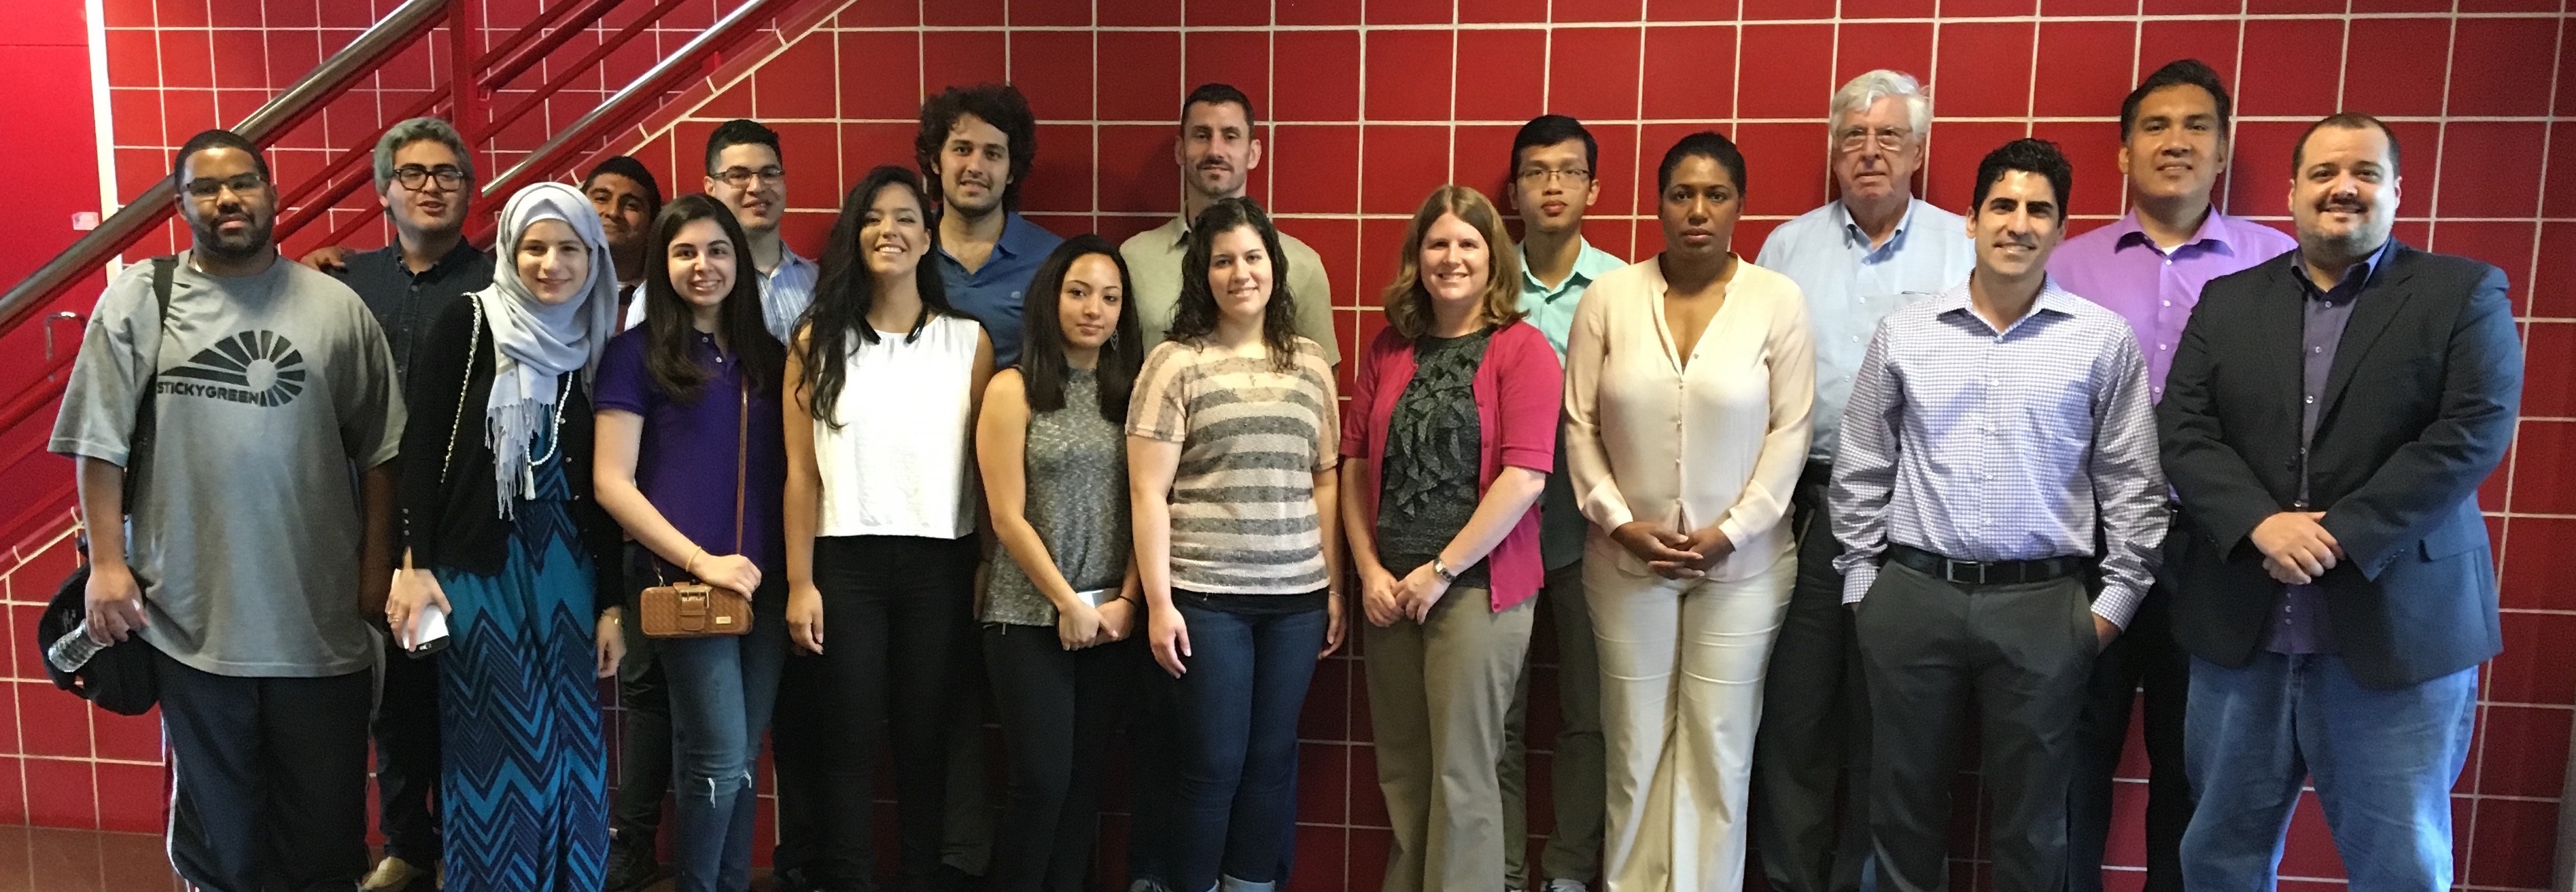 2016 REEMS REU Kick-off Meeting